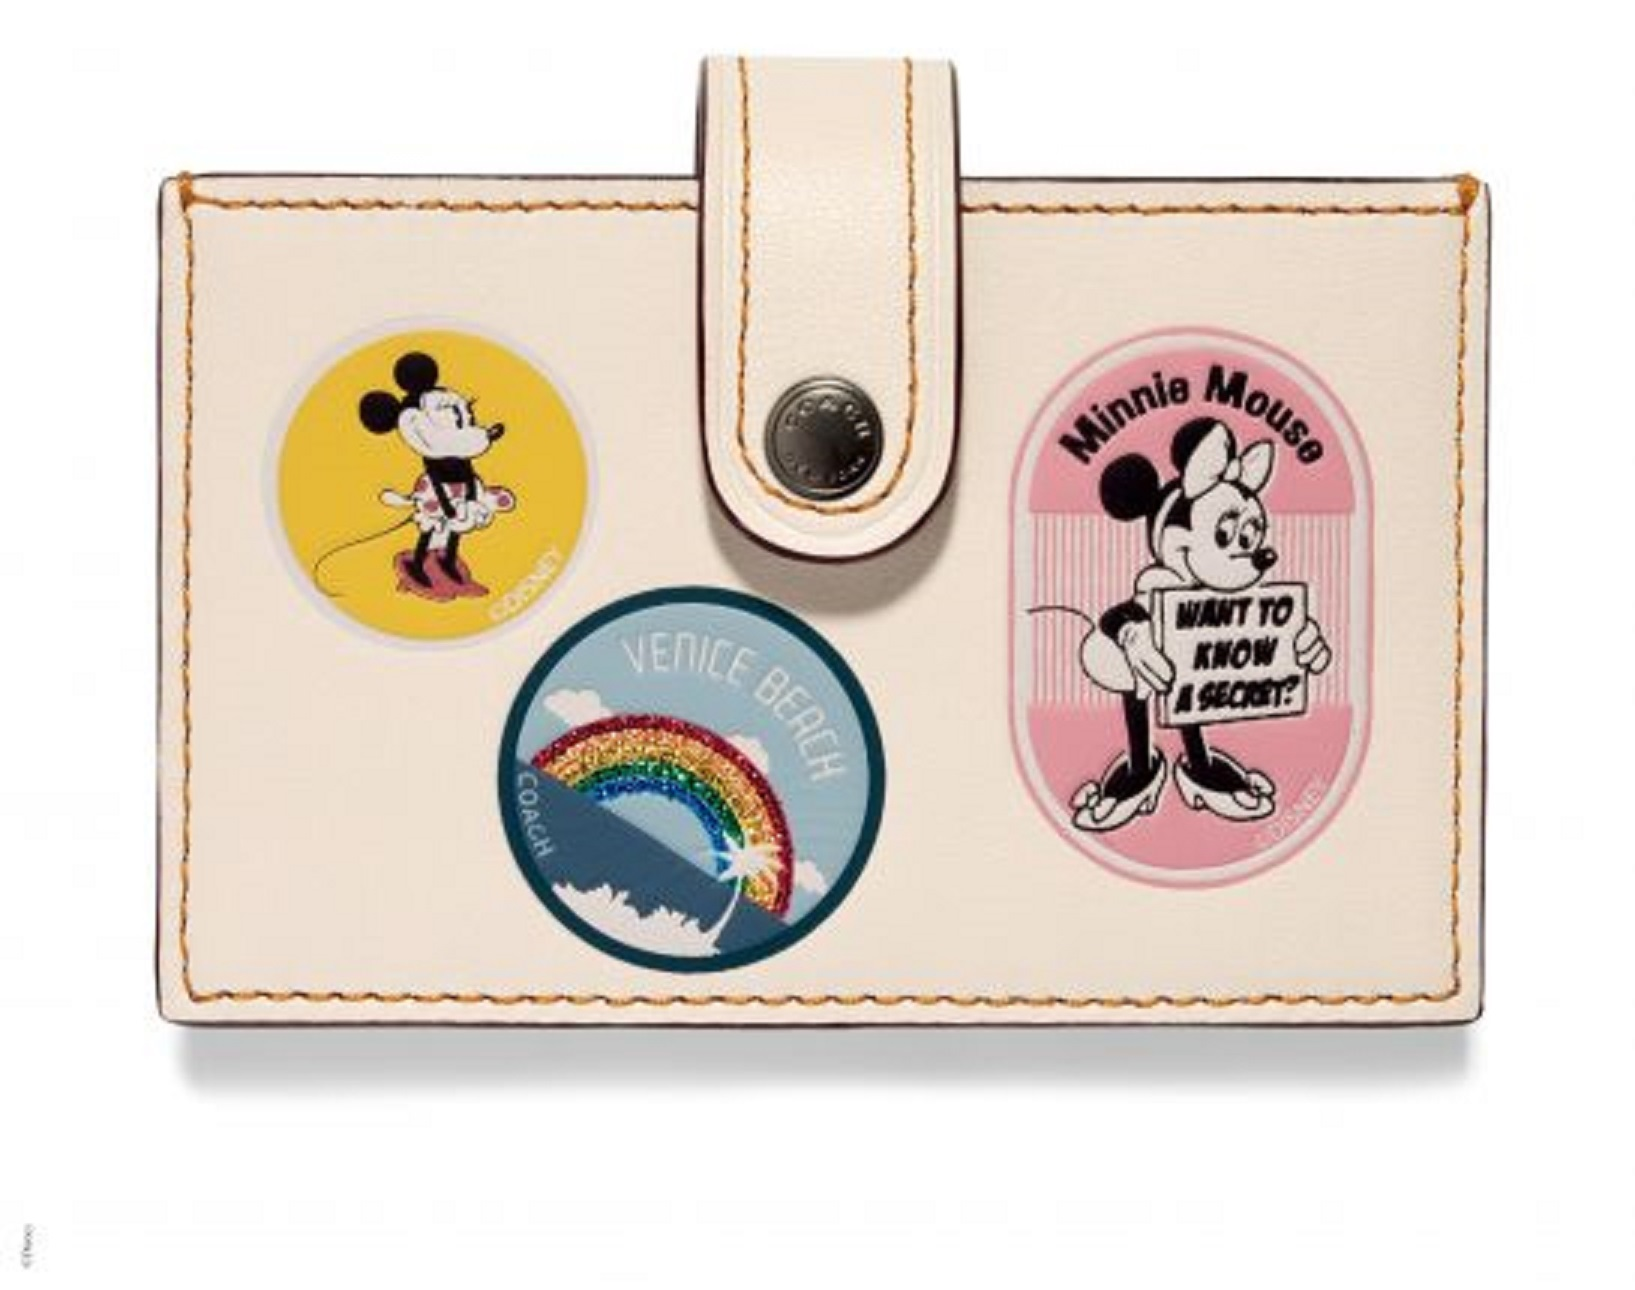 Disney x Coach Accordion Card Case With Minnie Mouse, _INR 6000, available at Coach. (1)